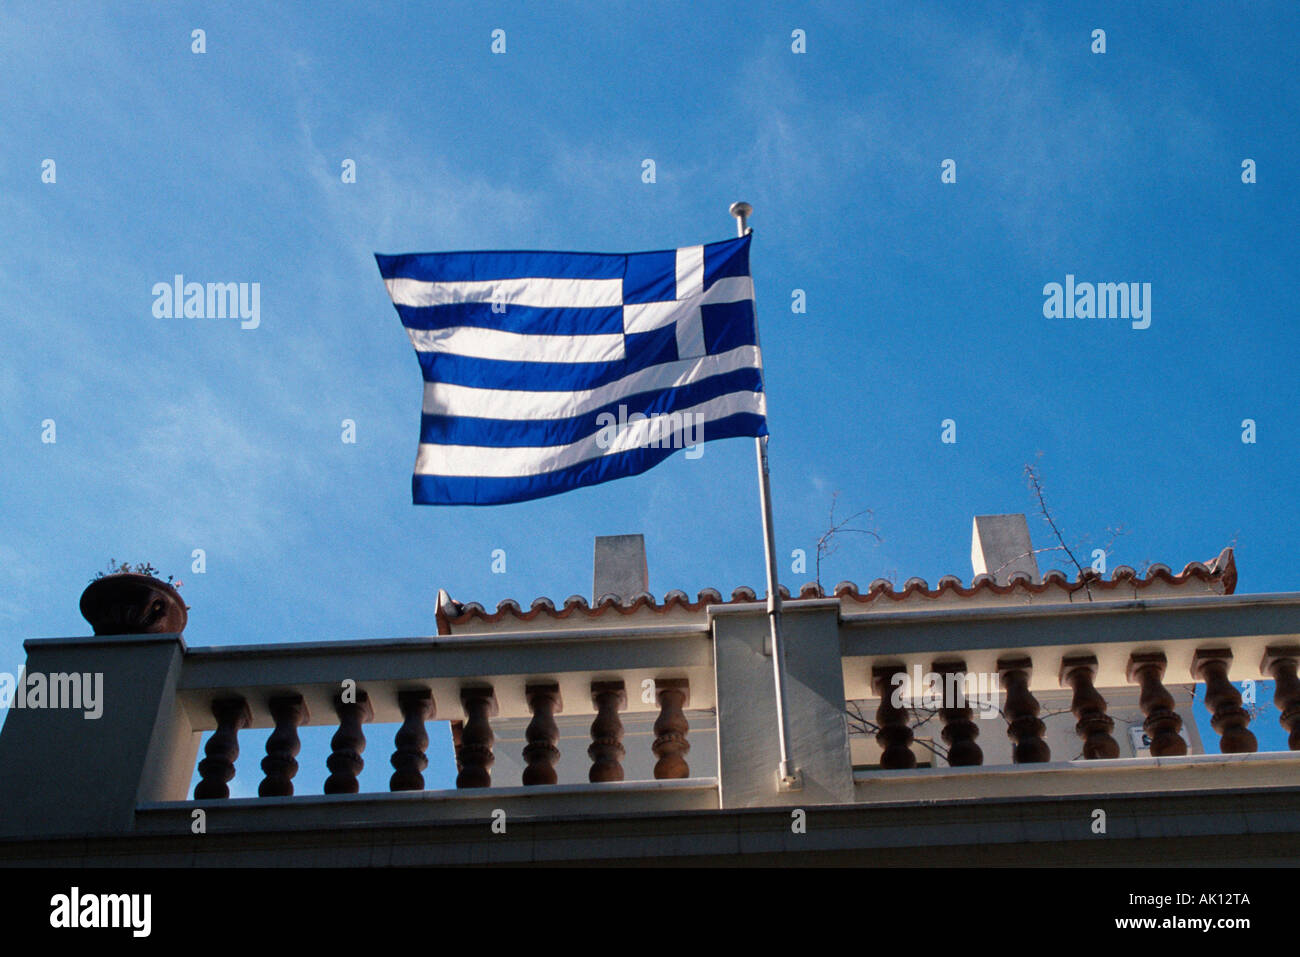 Grecian flag / Griechische Flagge / Fahne - Stock Image